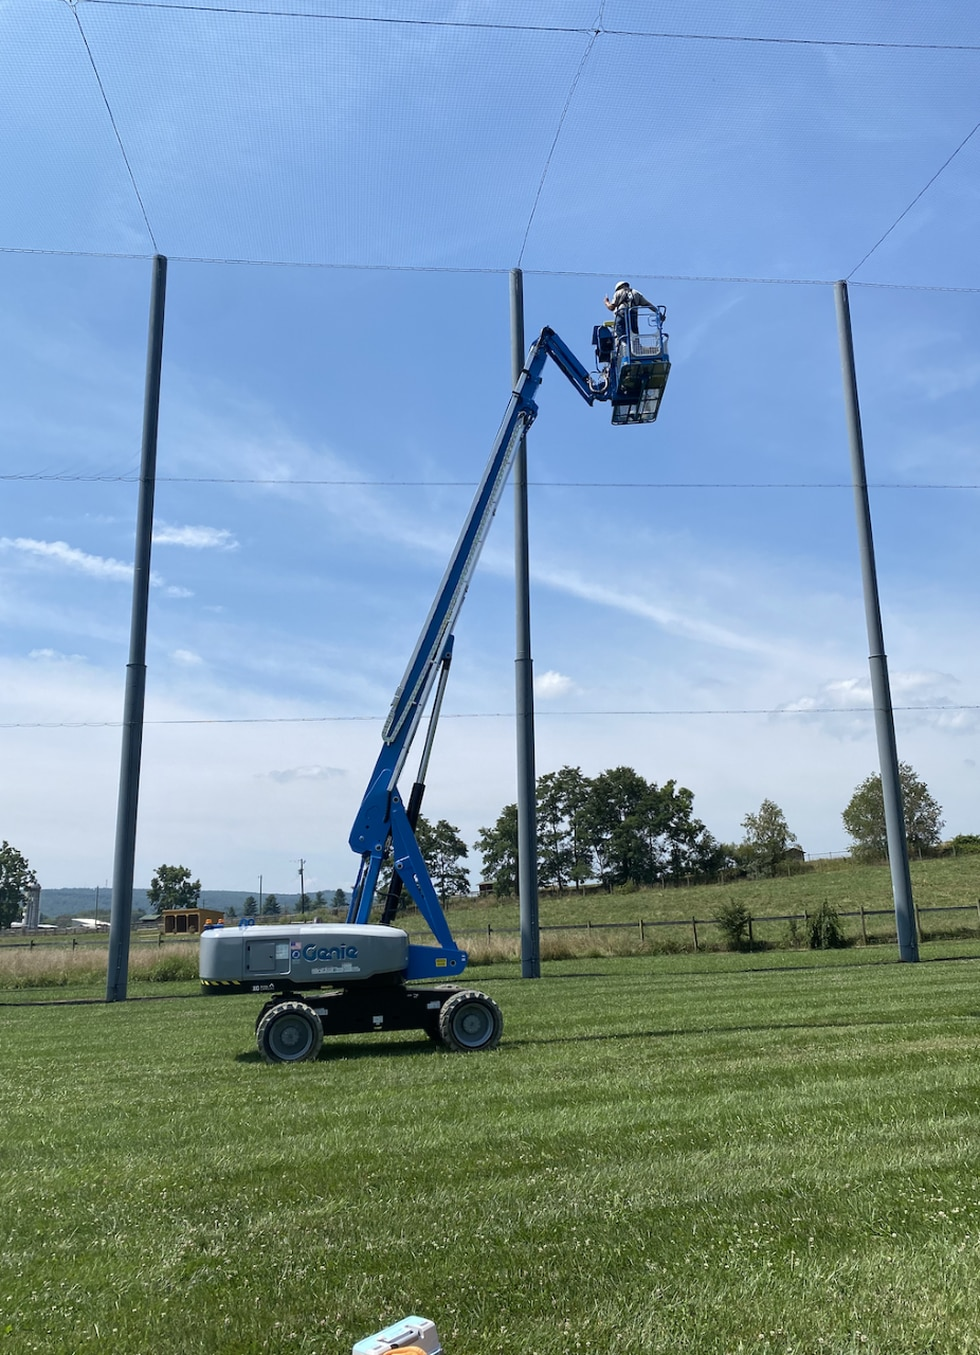 It took several cherry pickers to remove the goose from the Virginia Tech Drone Park Cage.